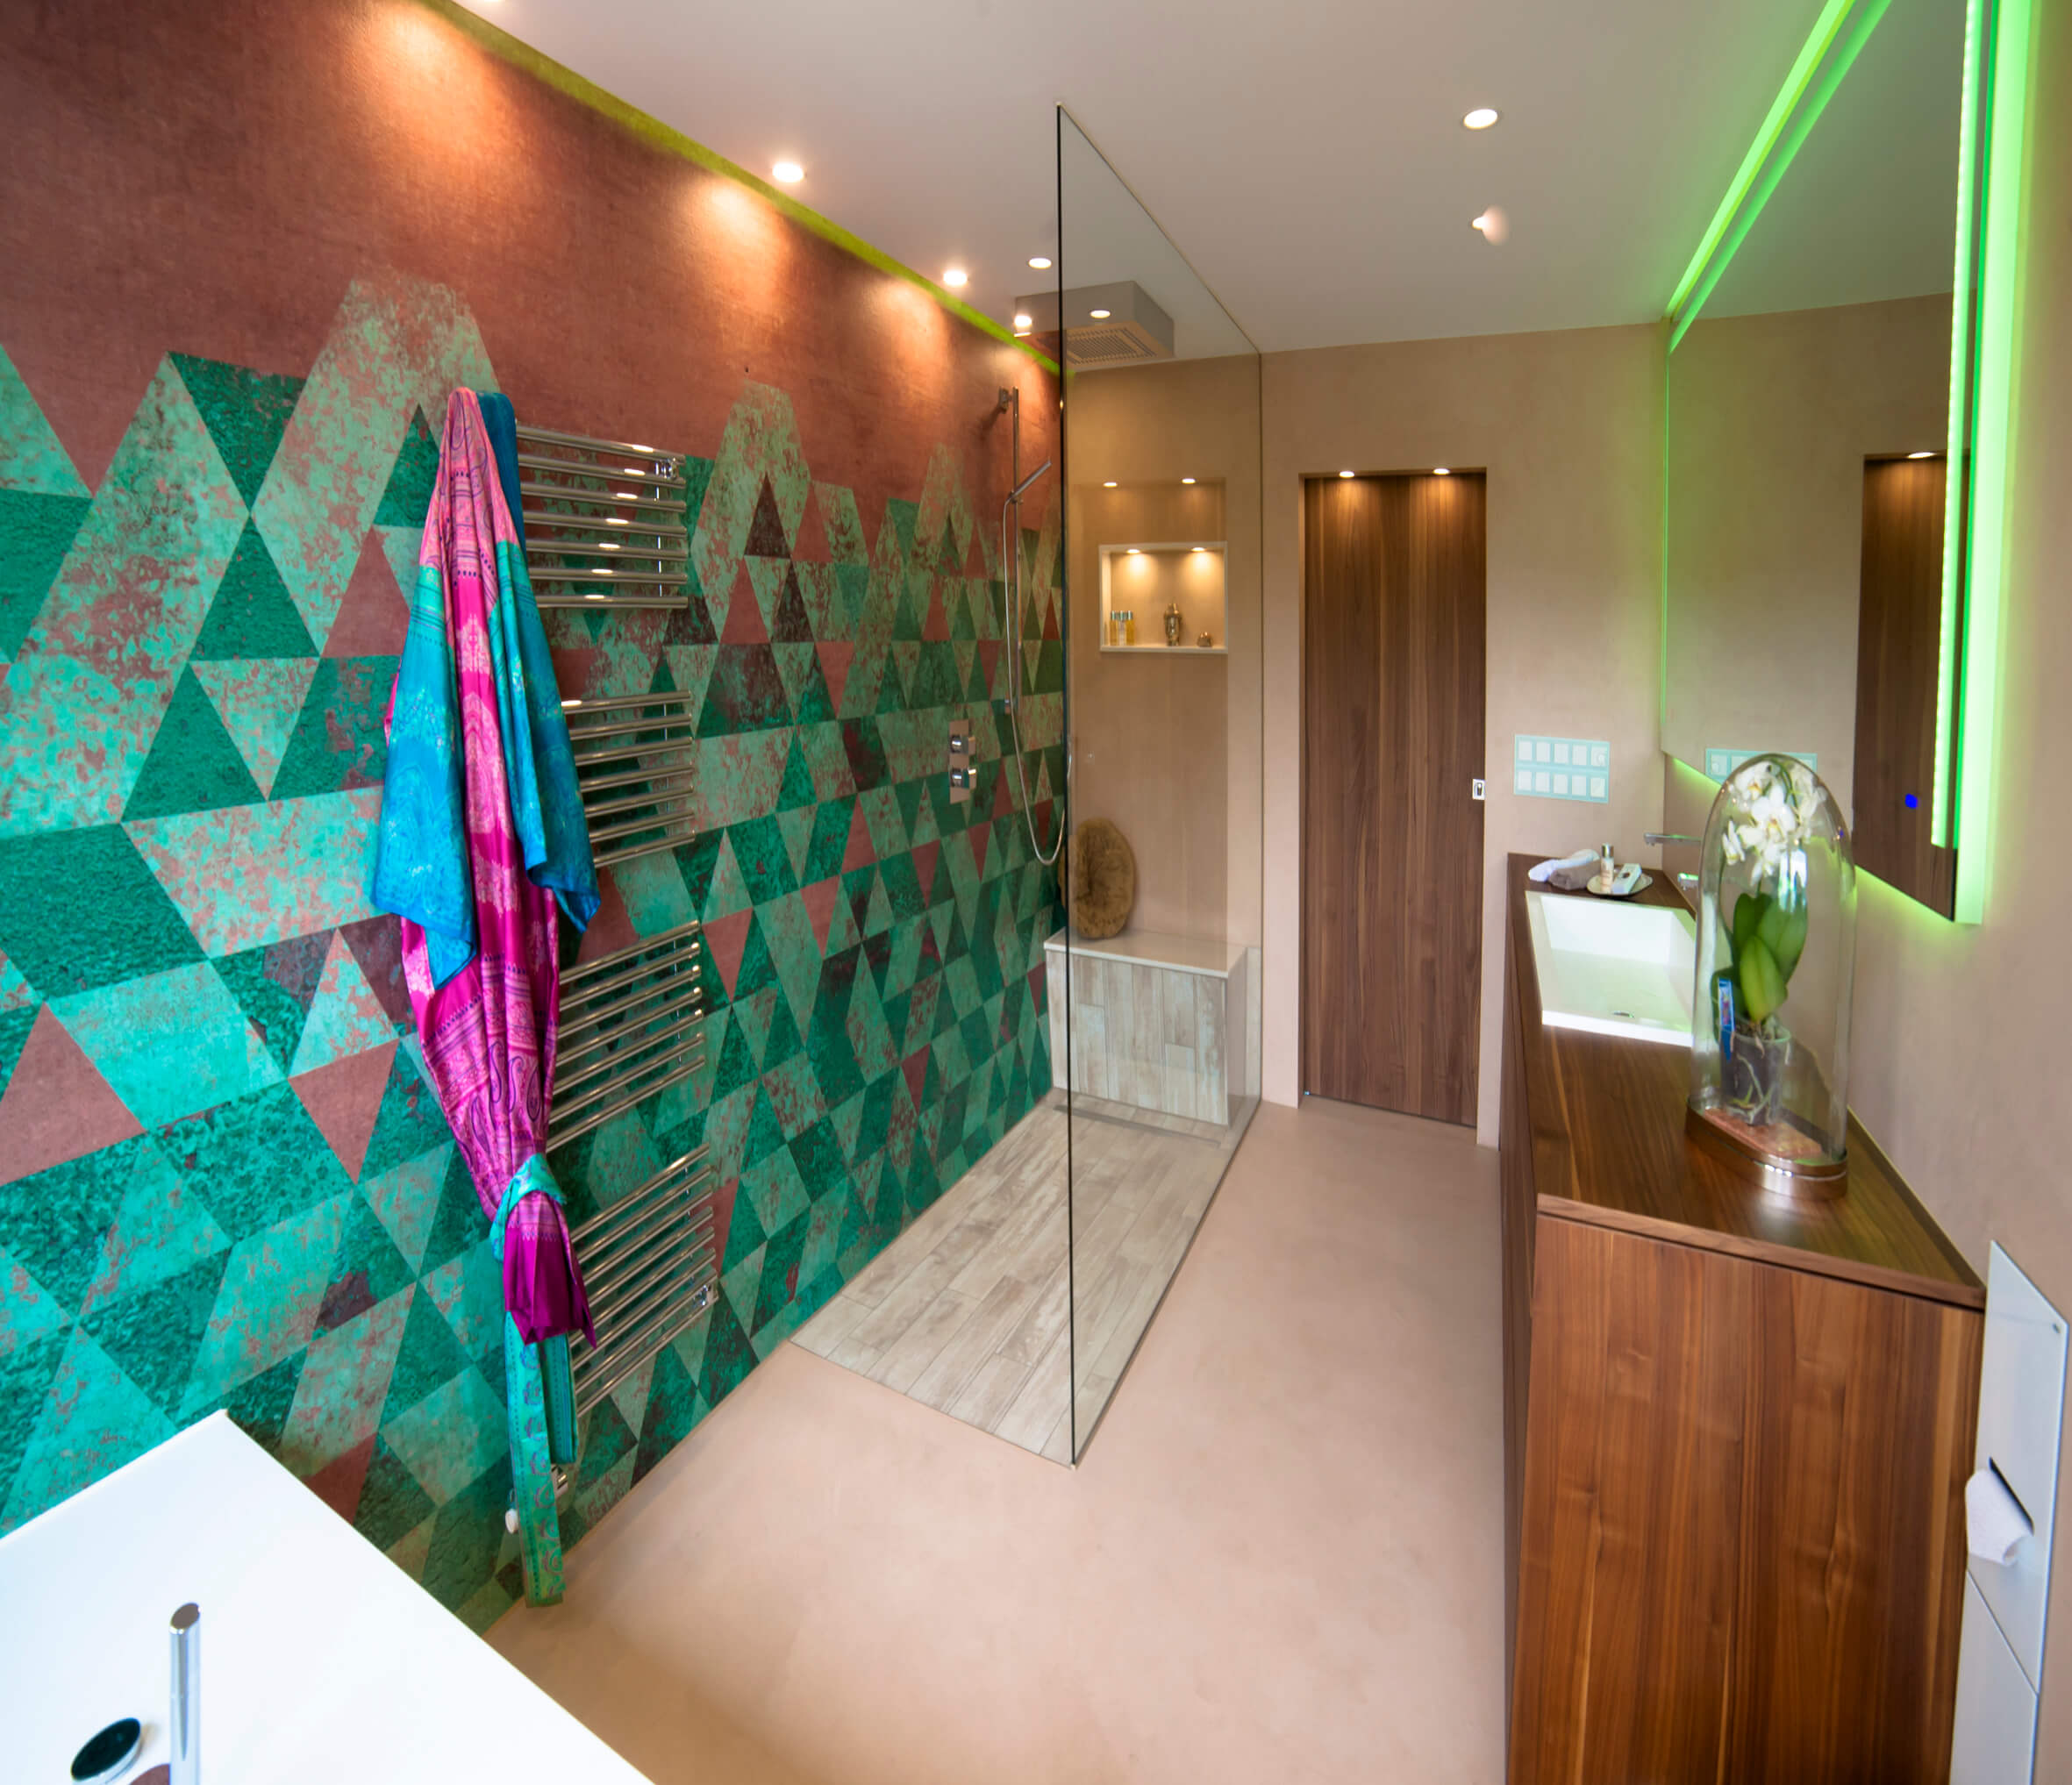 Badezimmer Ablage Ideen Modernes Bad Design Mit Wall And Deco Wet System Tapeten